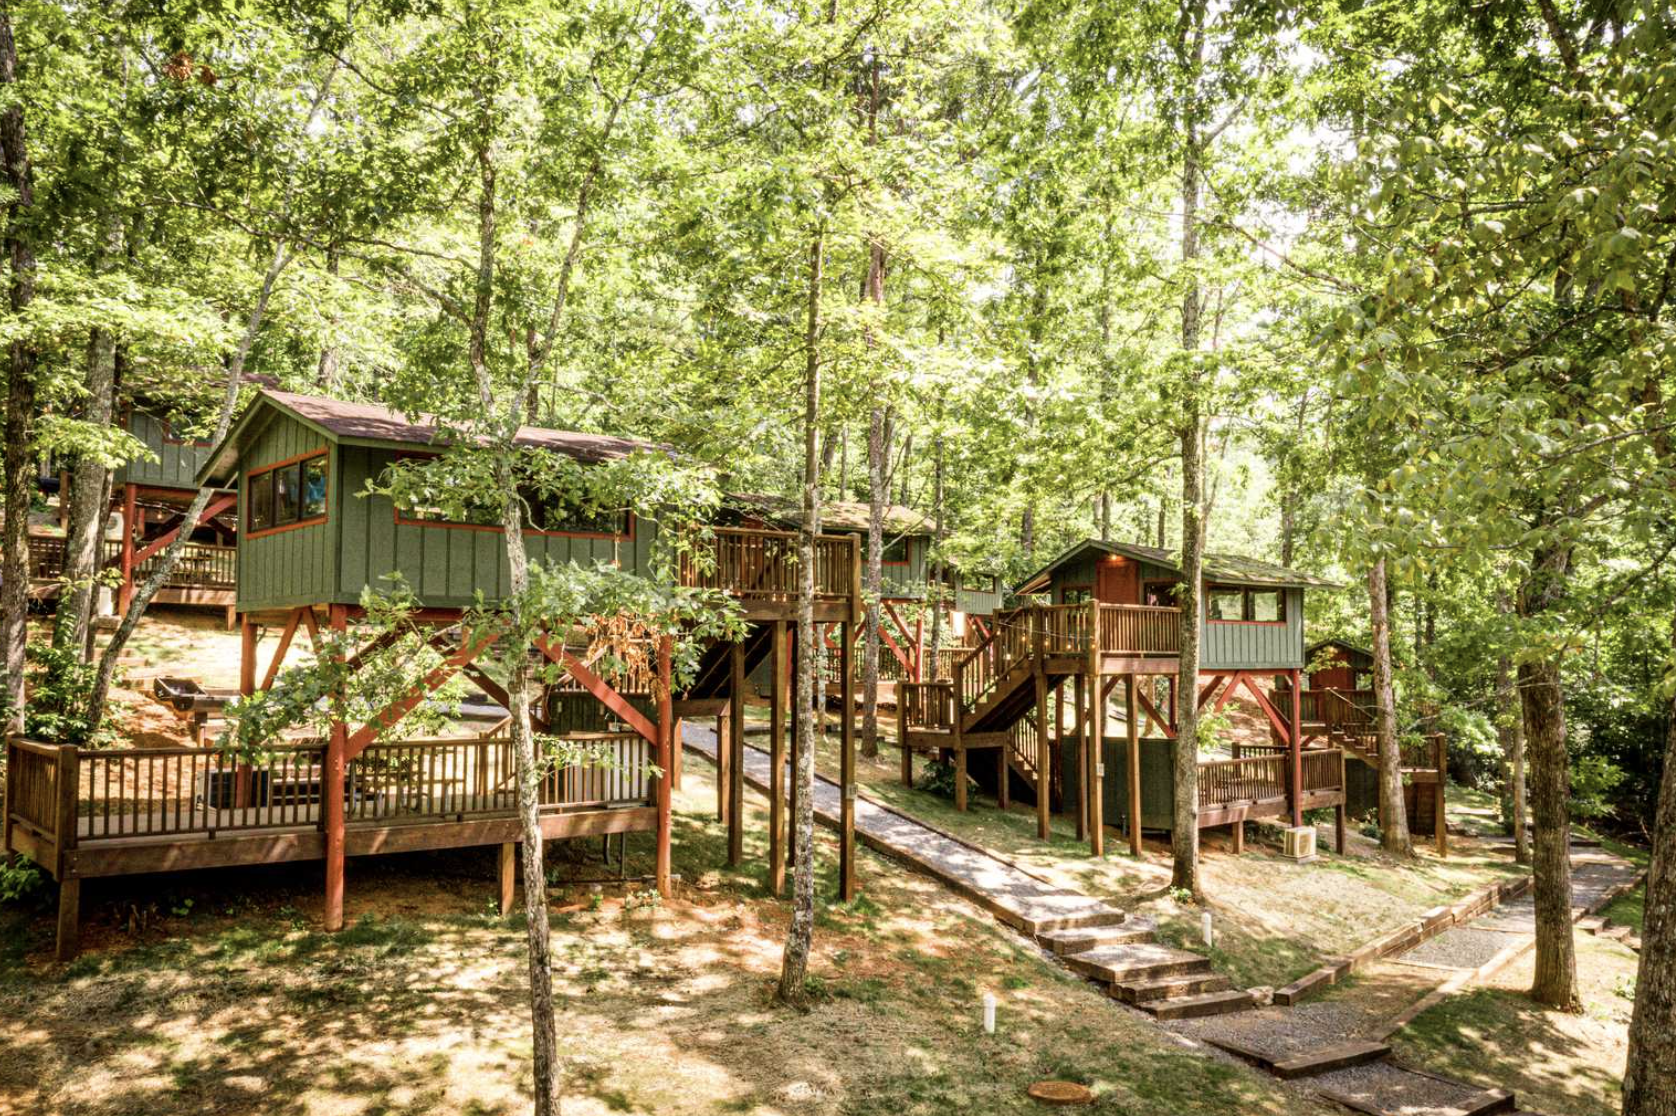 Tree houses tucked in the woods at the base of the blue ridge mountains